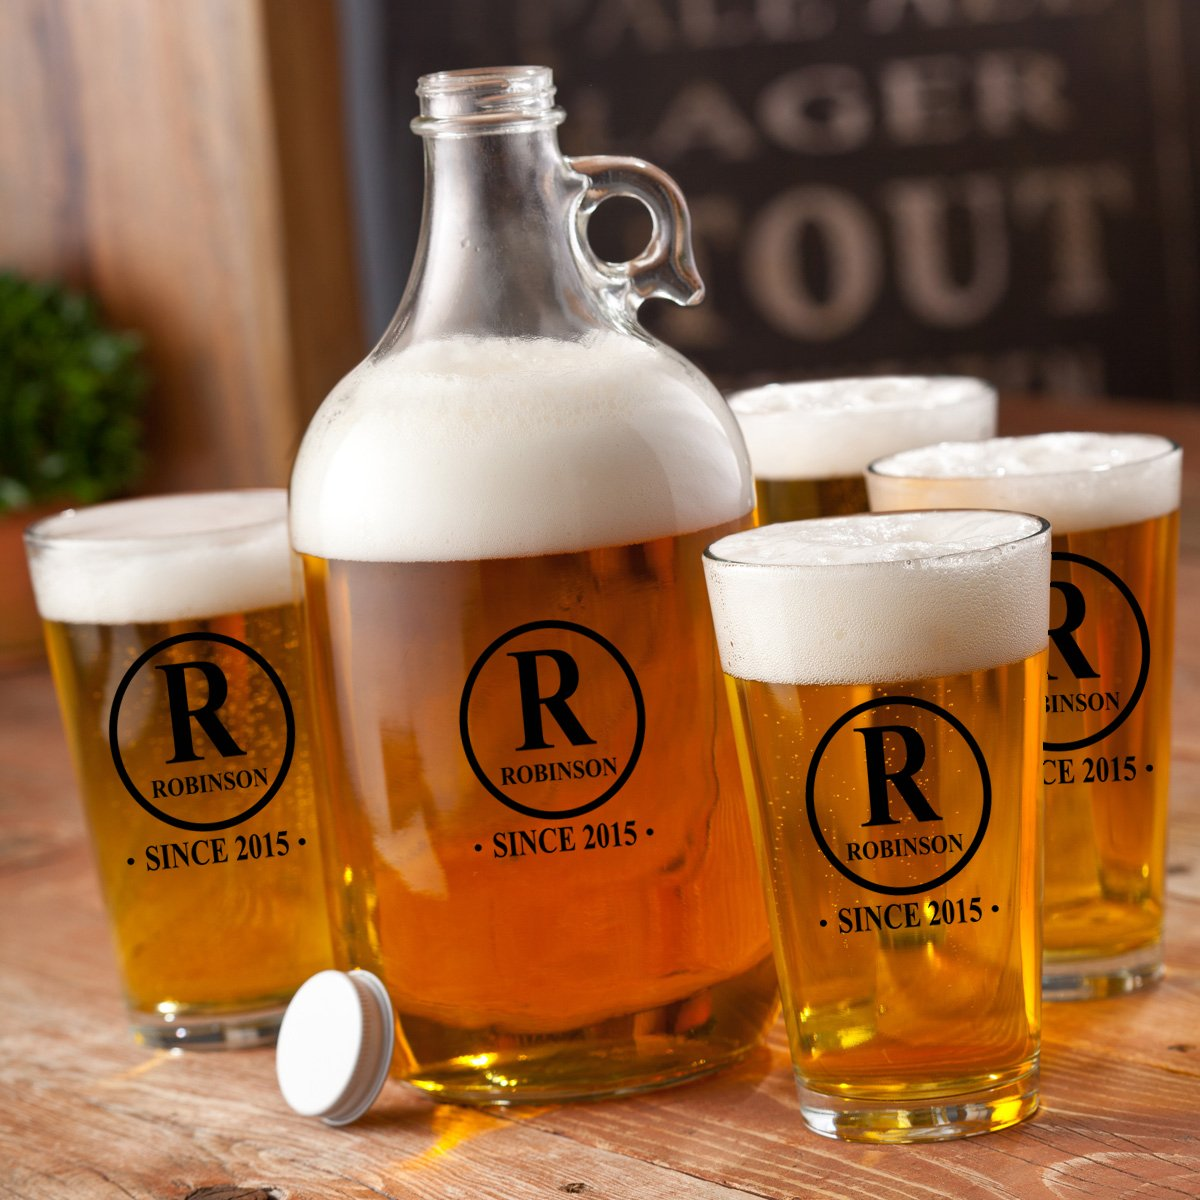 Personalized Beer Printed Growler Set With 4 -16 oz Pint Glasses - Engraved Beer Growler JDS GC1270 INIT-BLK